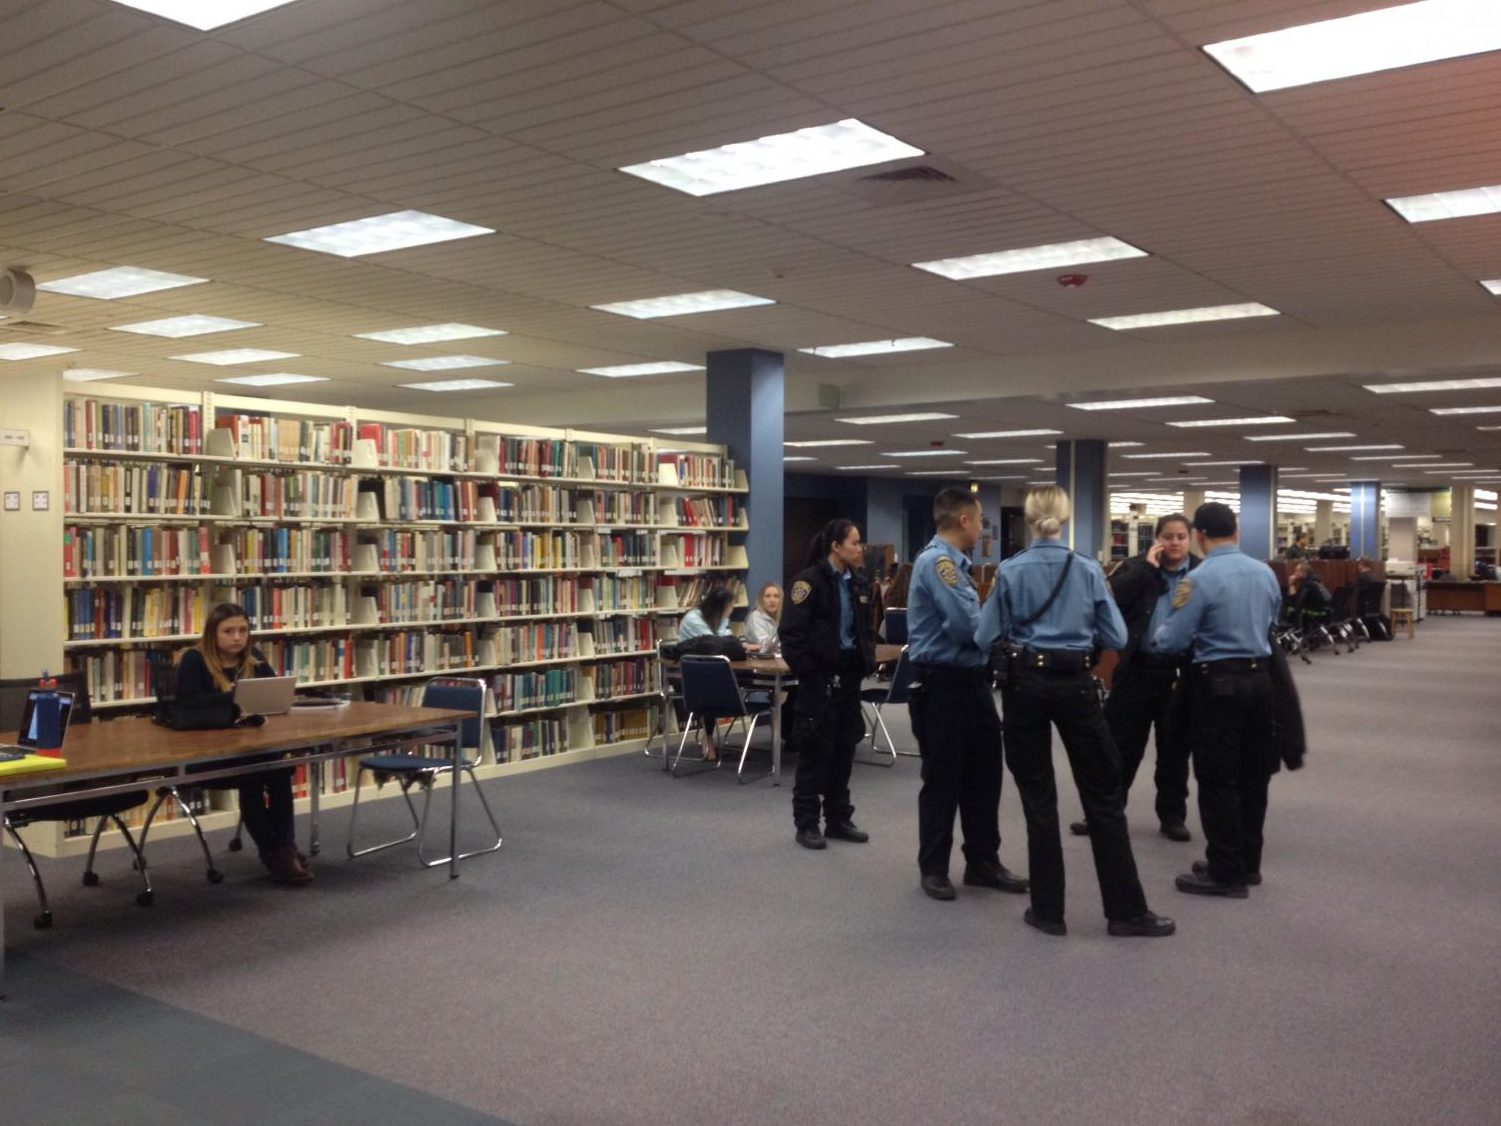 Community service officers from the Sacramento State Police Department gather while officers investigate a fight that broke out in the University Library on Tuesday, March 6, 2018. According to witnesses, the fight started after one person told someone else to leave for sneezing.